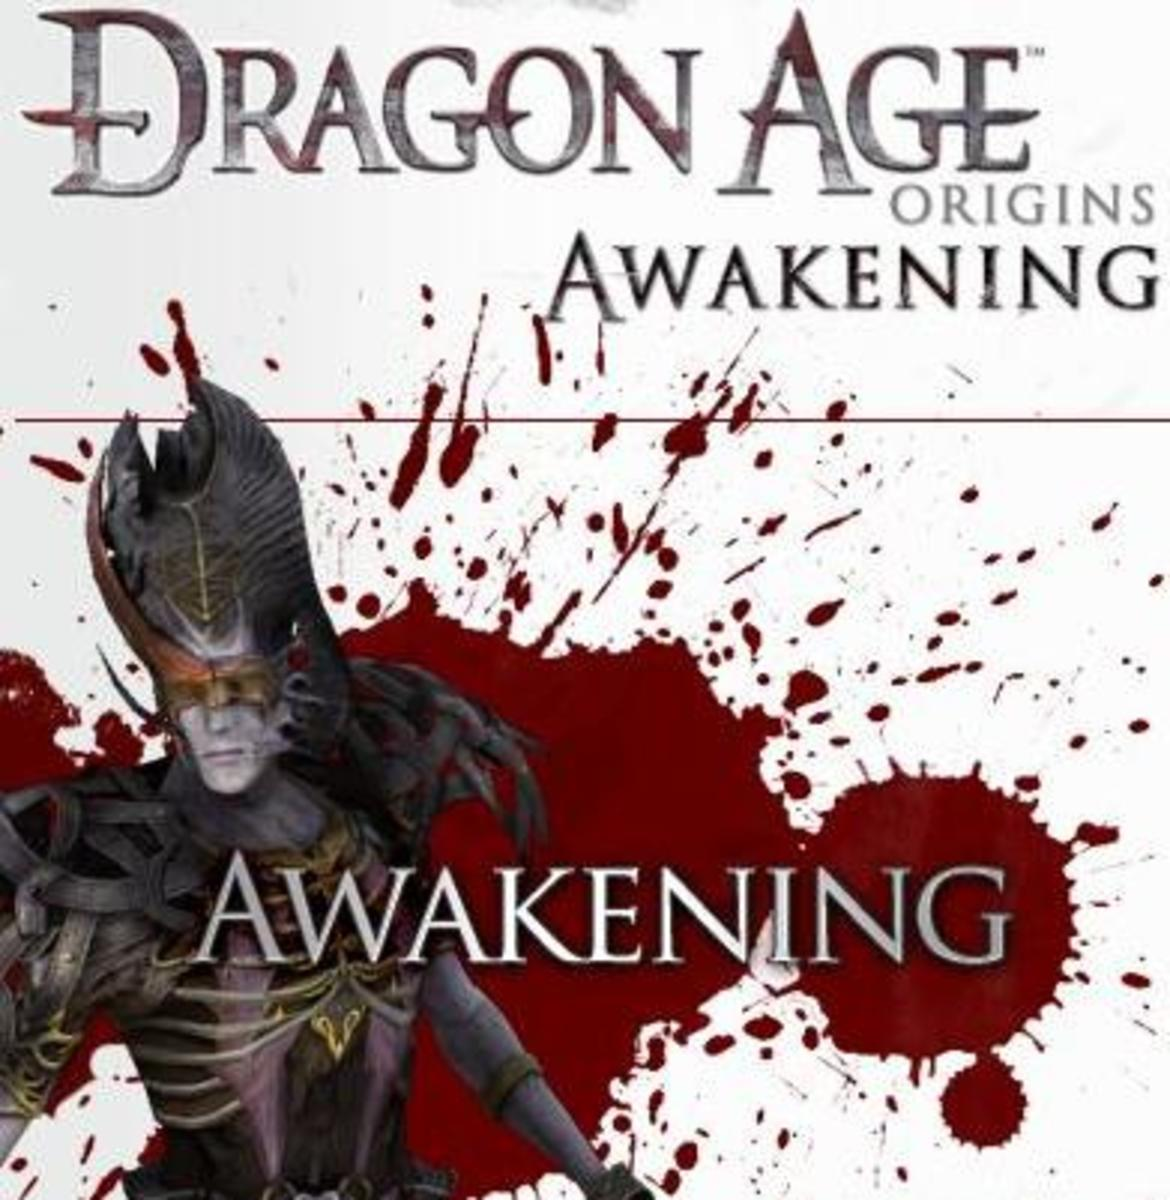 Dragon age origins awakening gift giving guide hubpages what gifts this time gumiabroncs Image collections